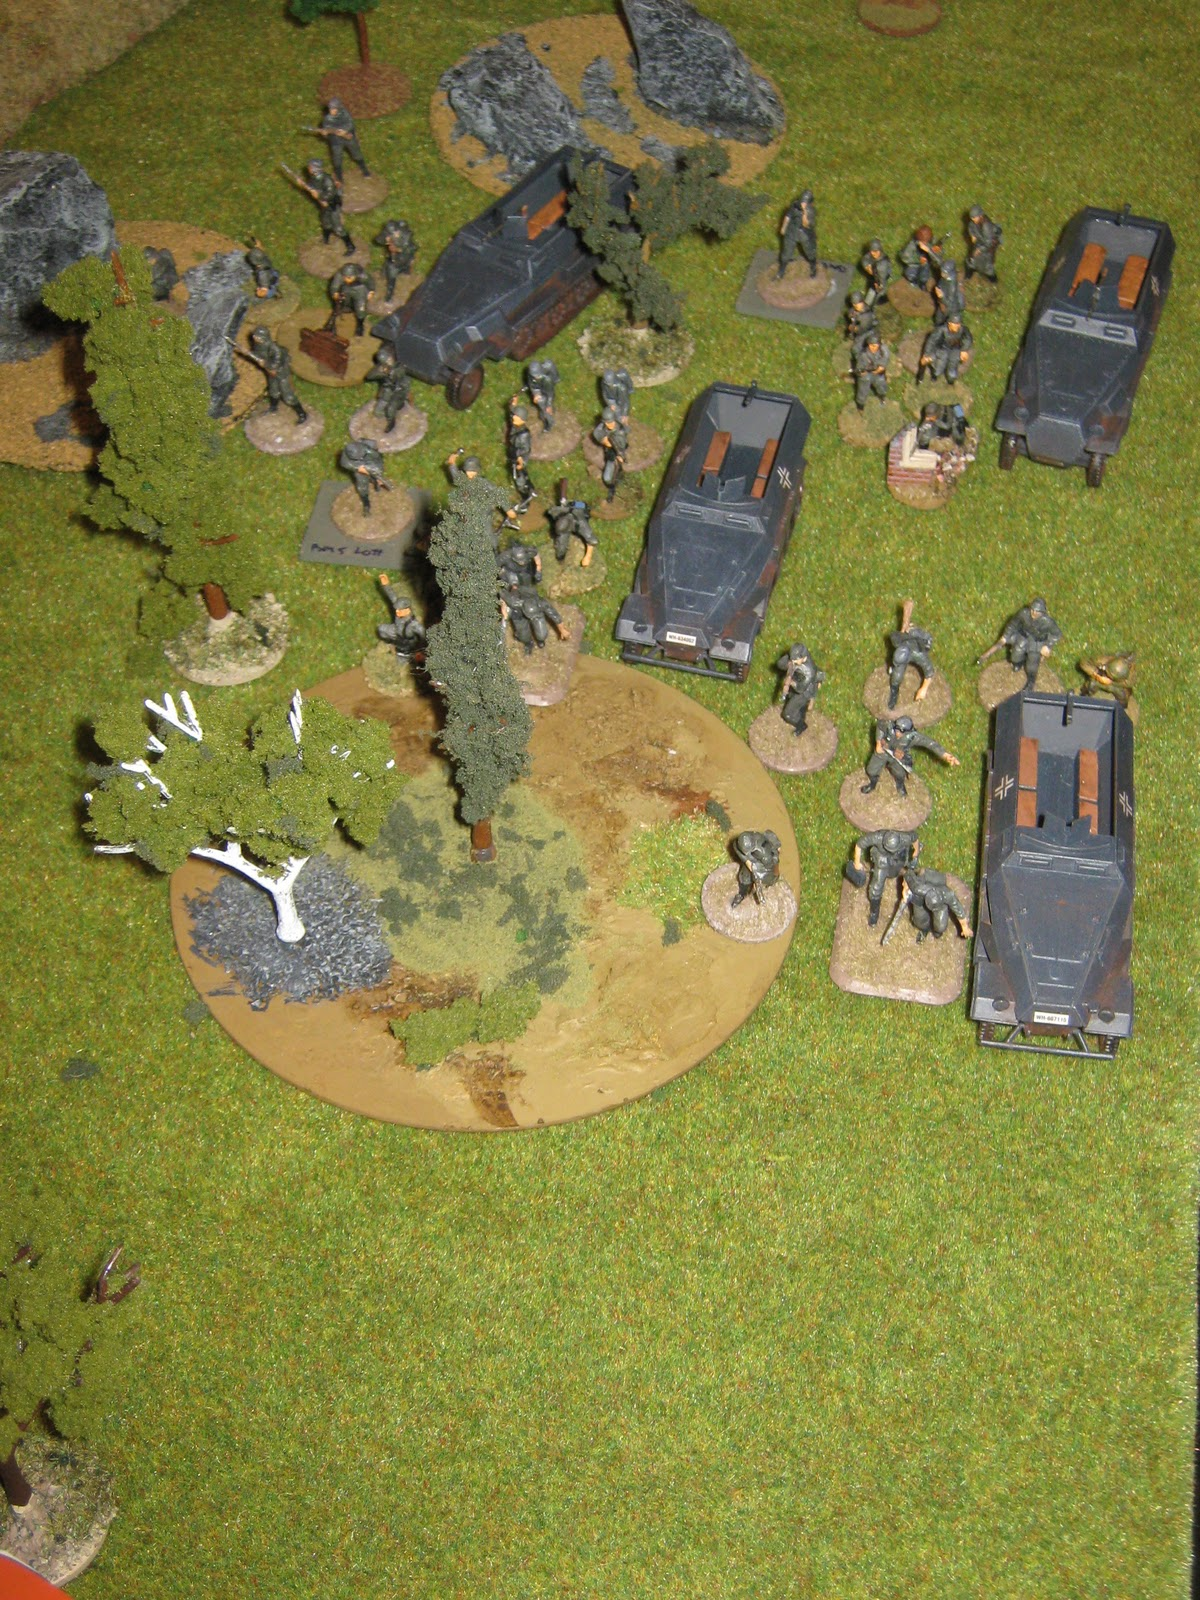 anzer grenadiers attack on the left flank. There's an AT-gun there, and a MG bunker. It was good to have a flame thrower.